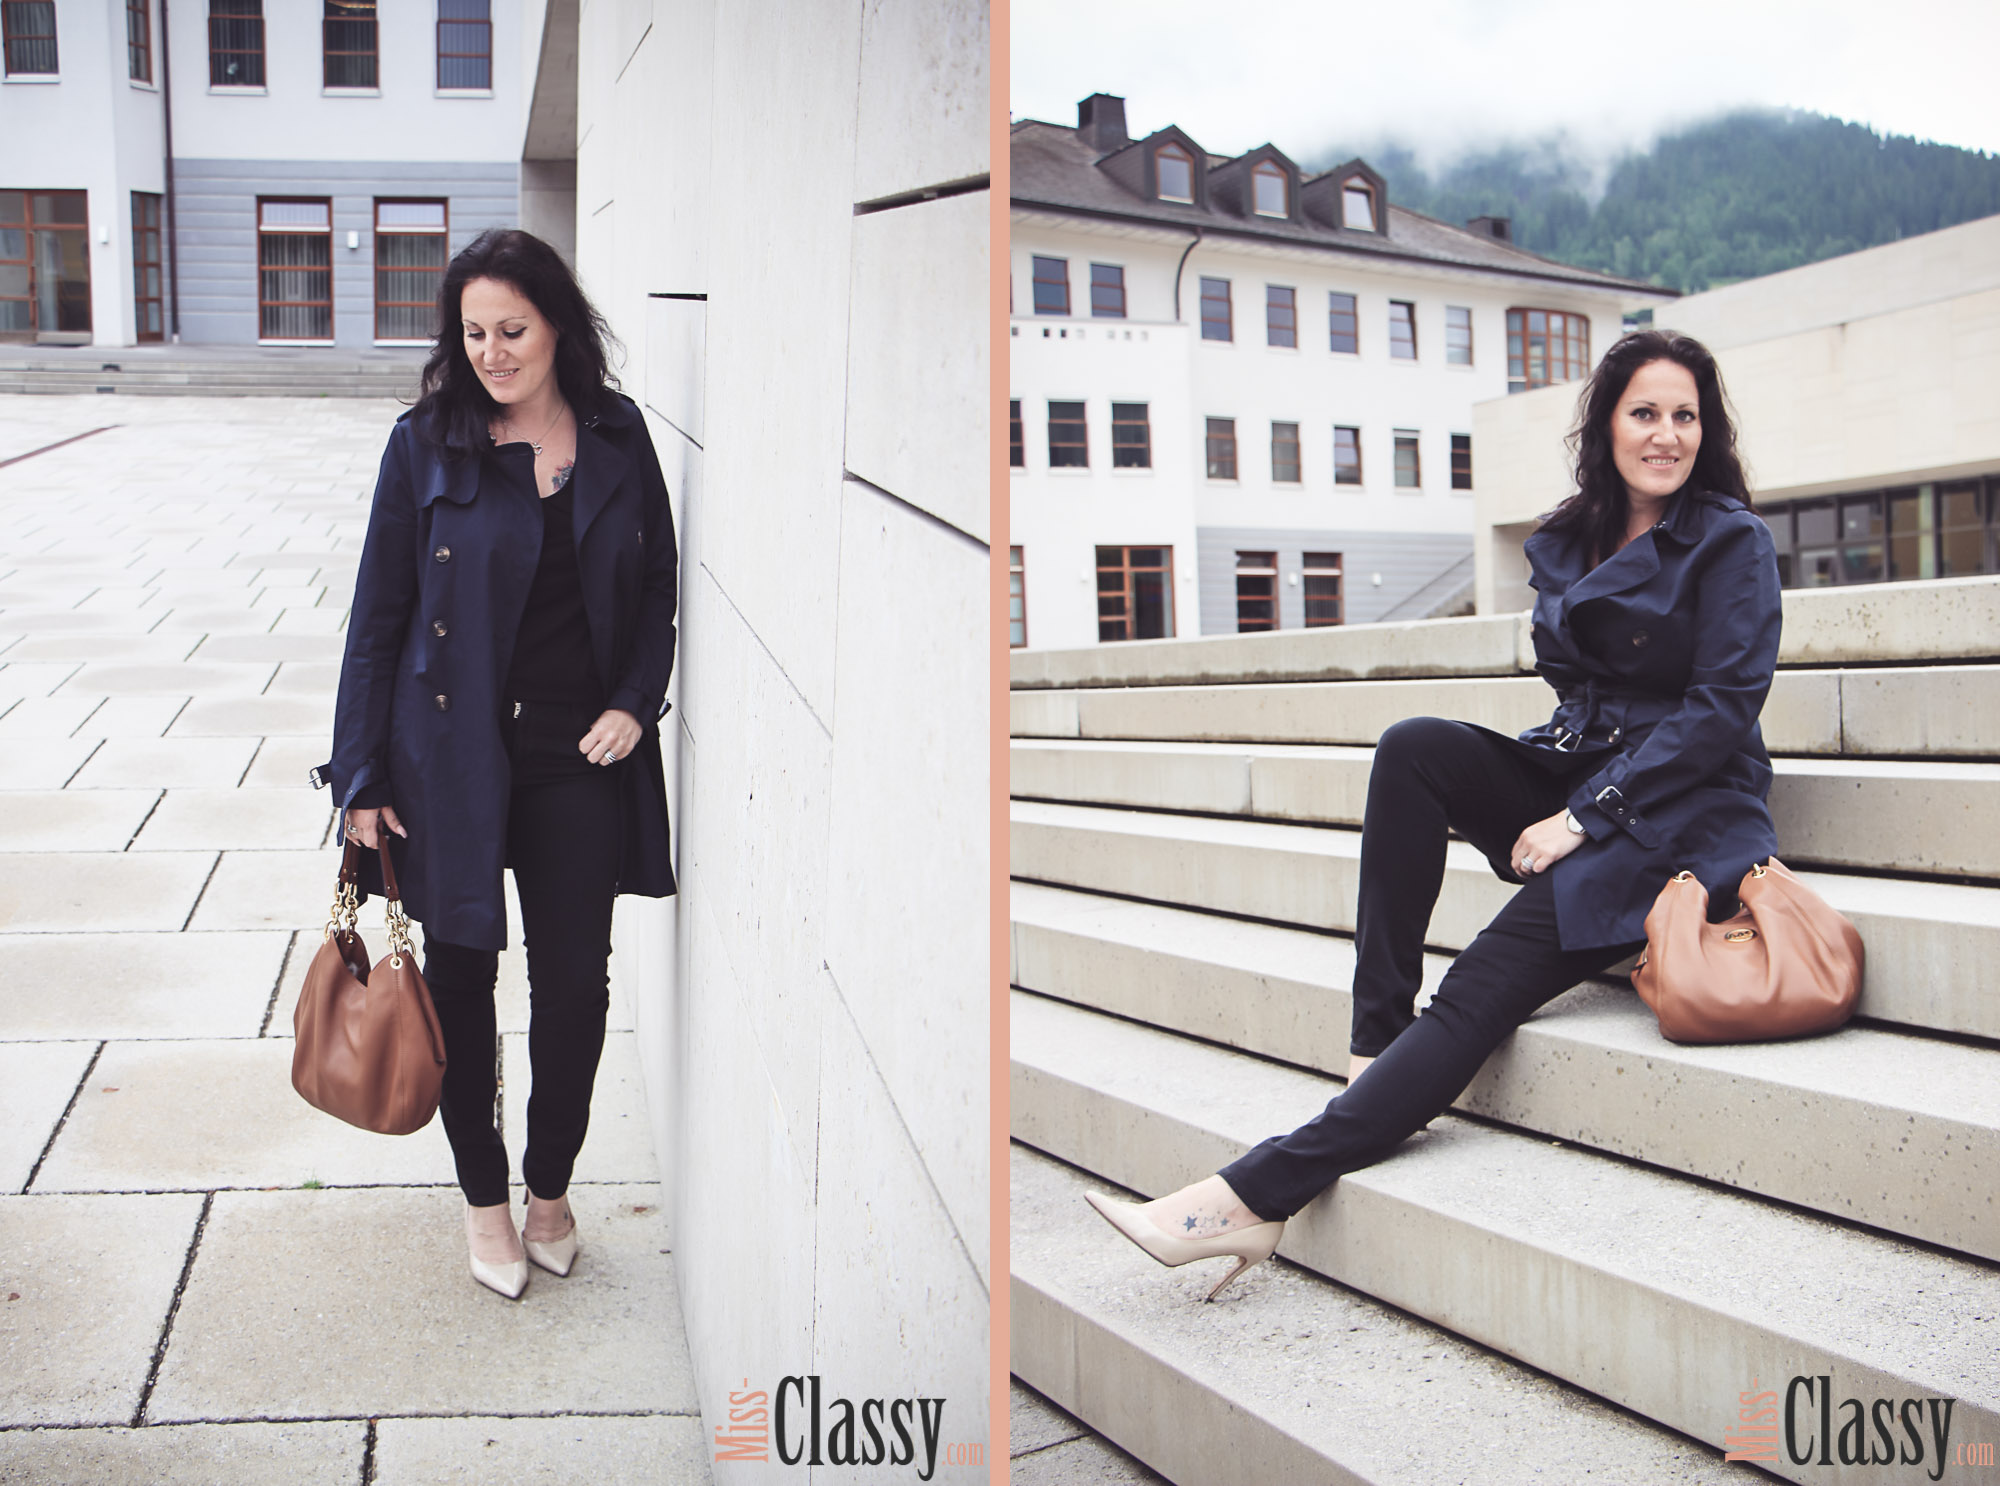 OUTFIT - Blauer Trenchcoat - Ferry Porsche Congress Center Zell am See - High Heels - Michael Kors - Esprit - Peter Kaiser